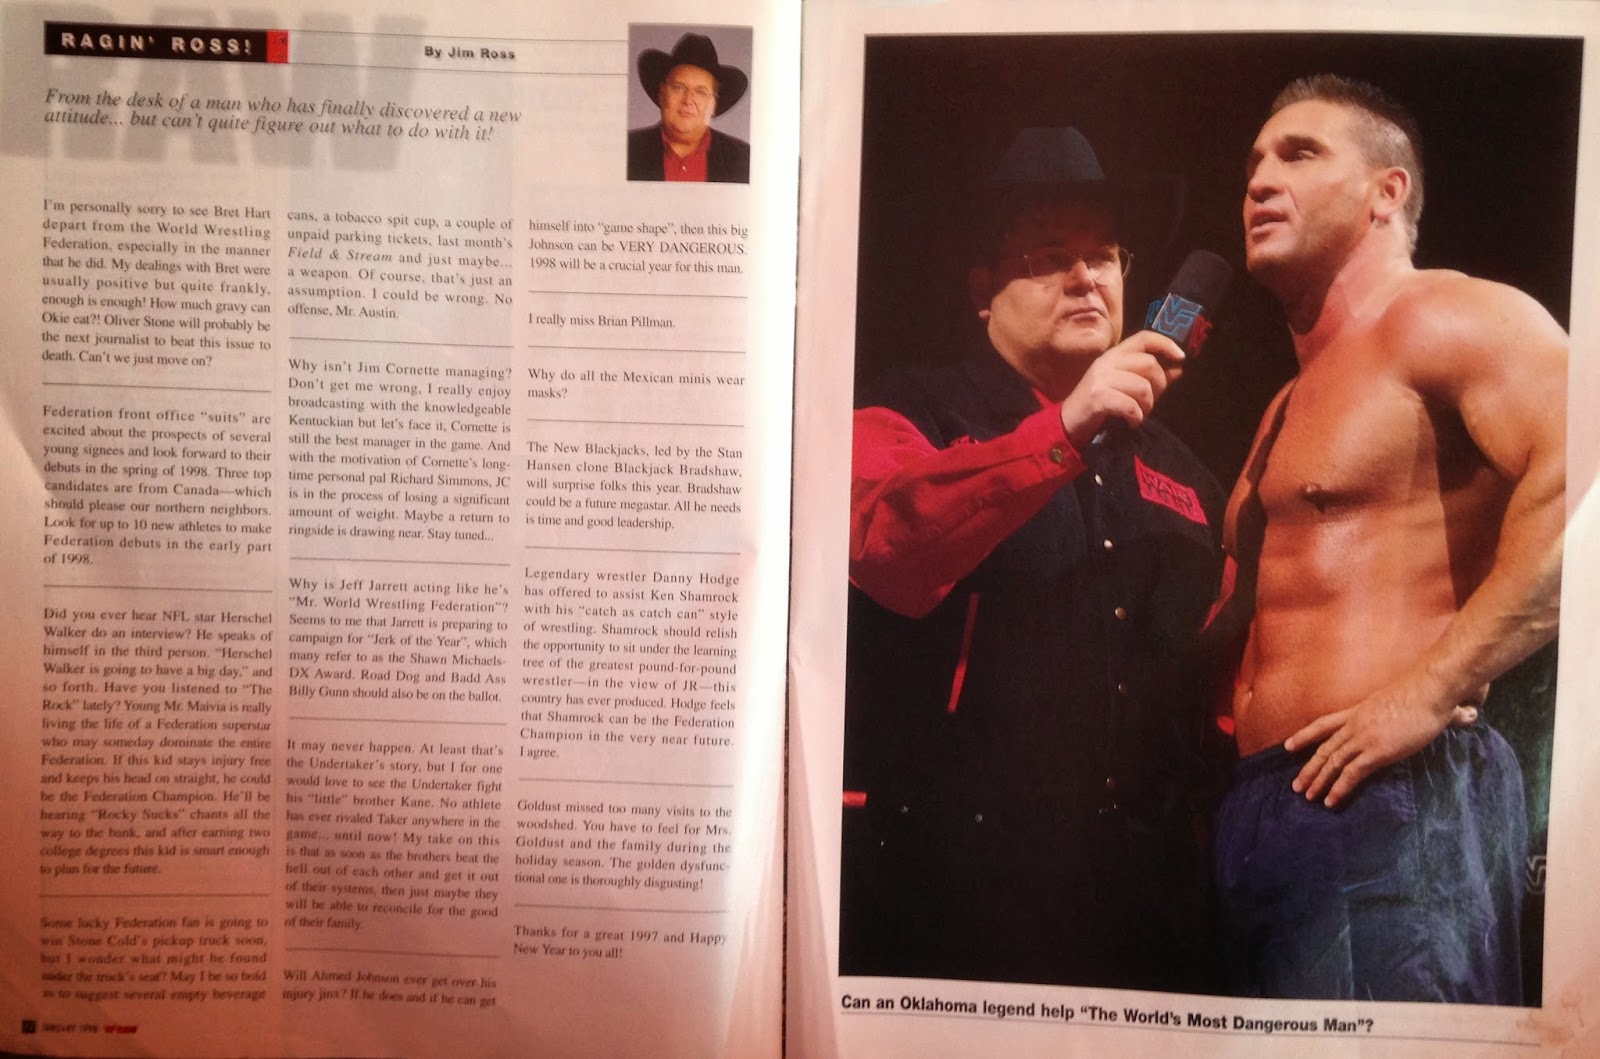 WWE: WWF RAW MAGAZINE - January 1998 - Jim Ross's report